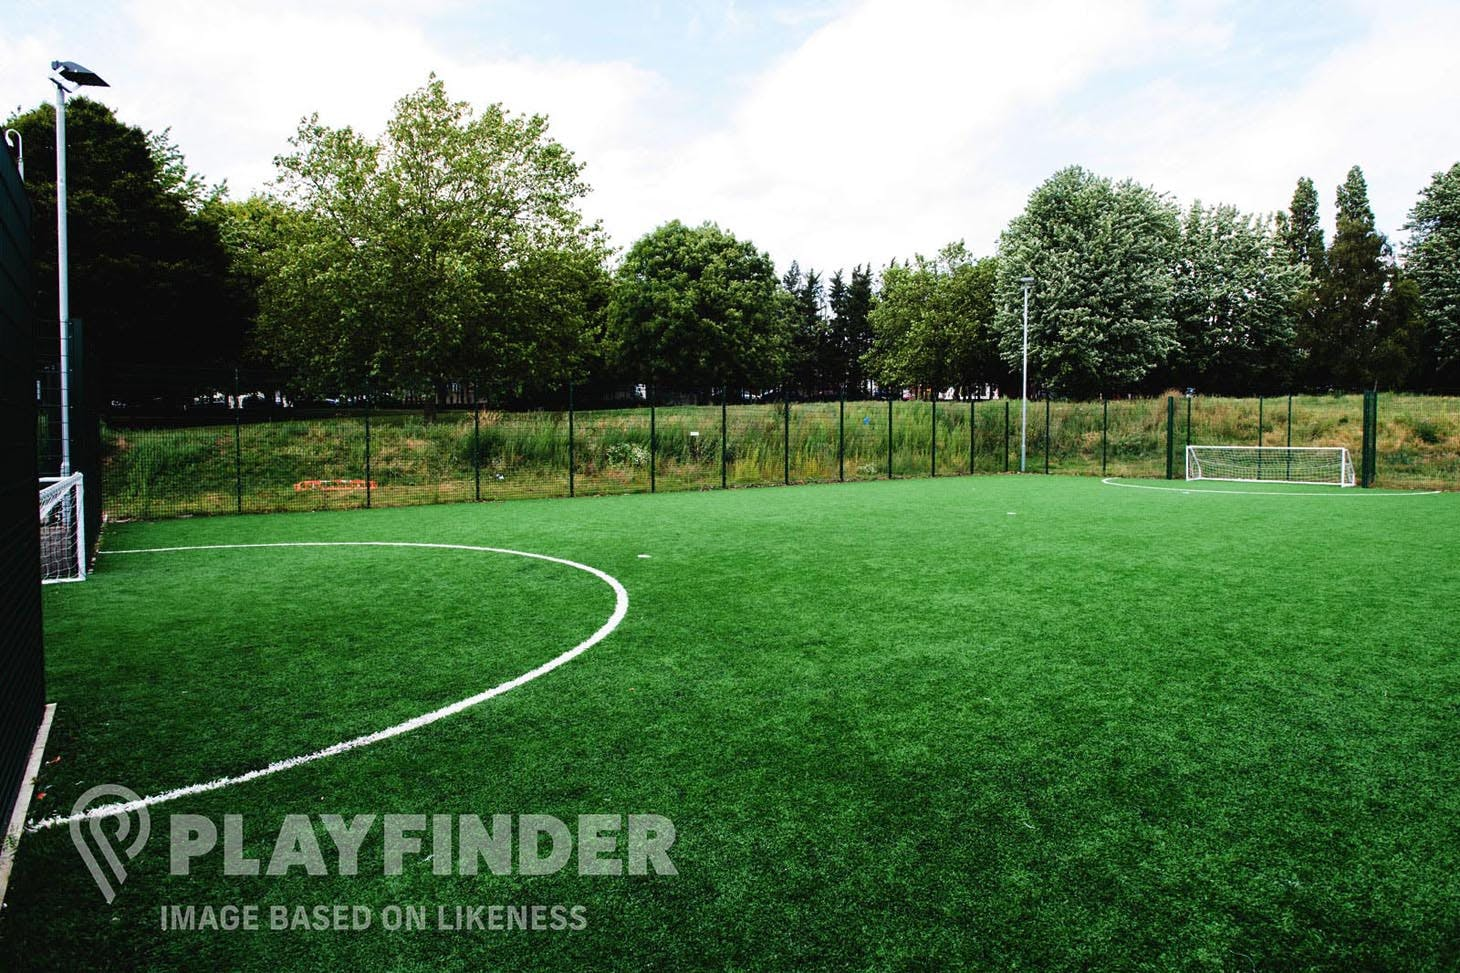 PlayFootball Southend 5 a side | 3G Astroturf football pitch